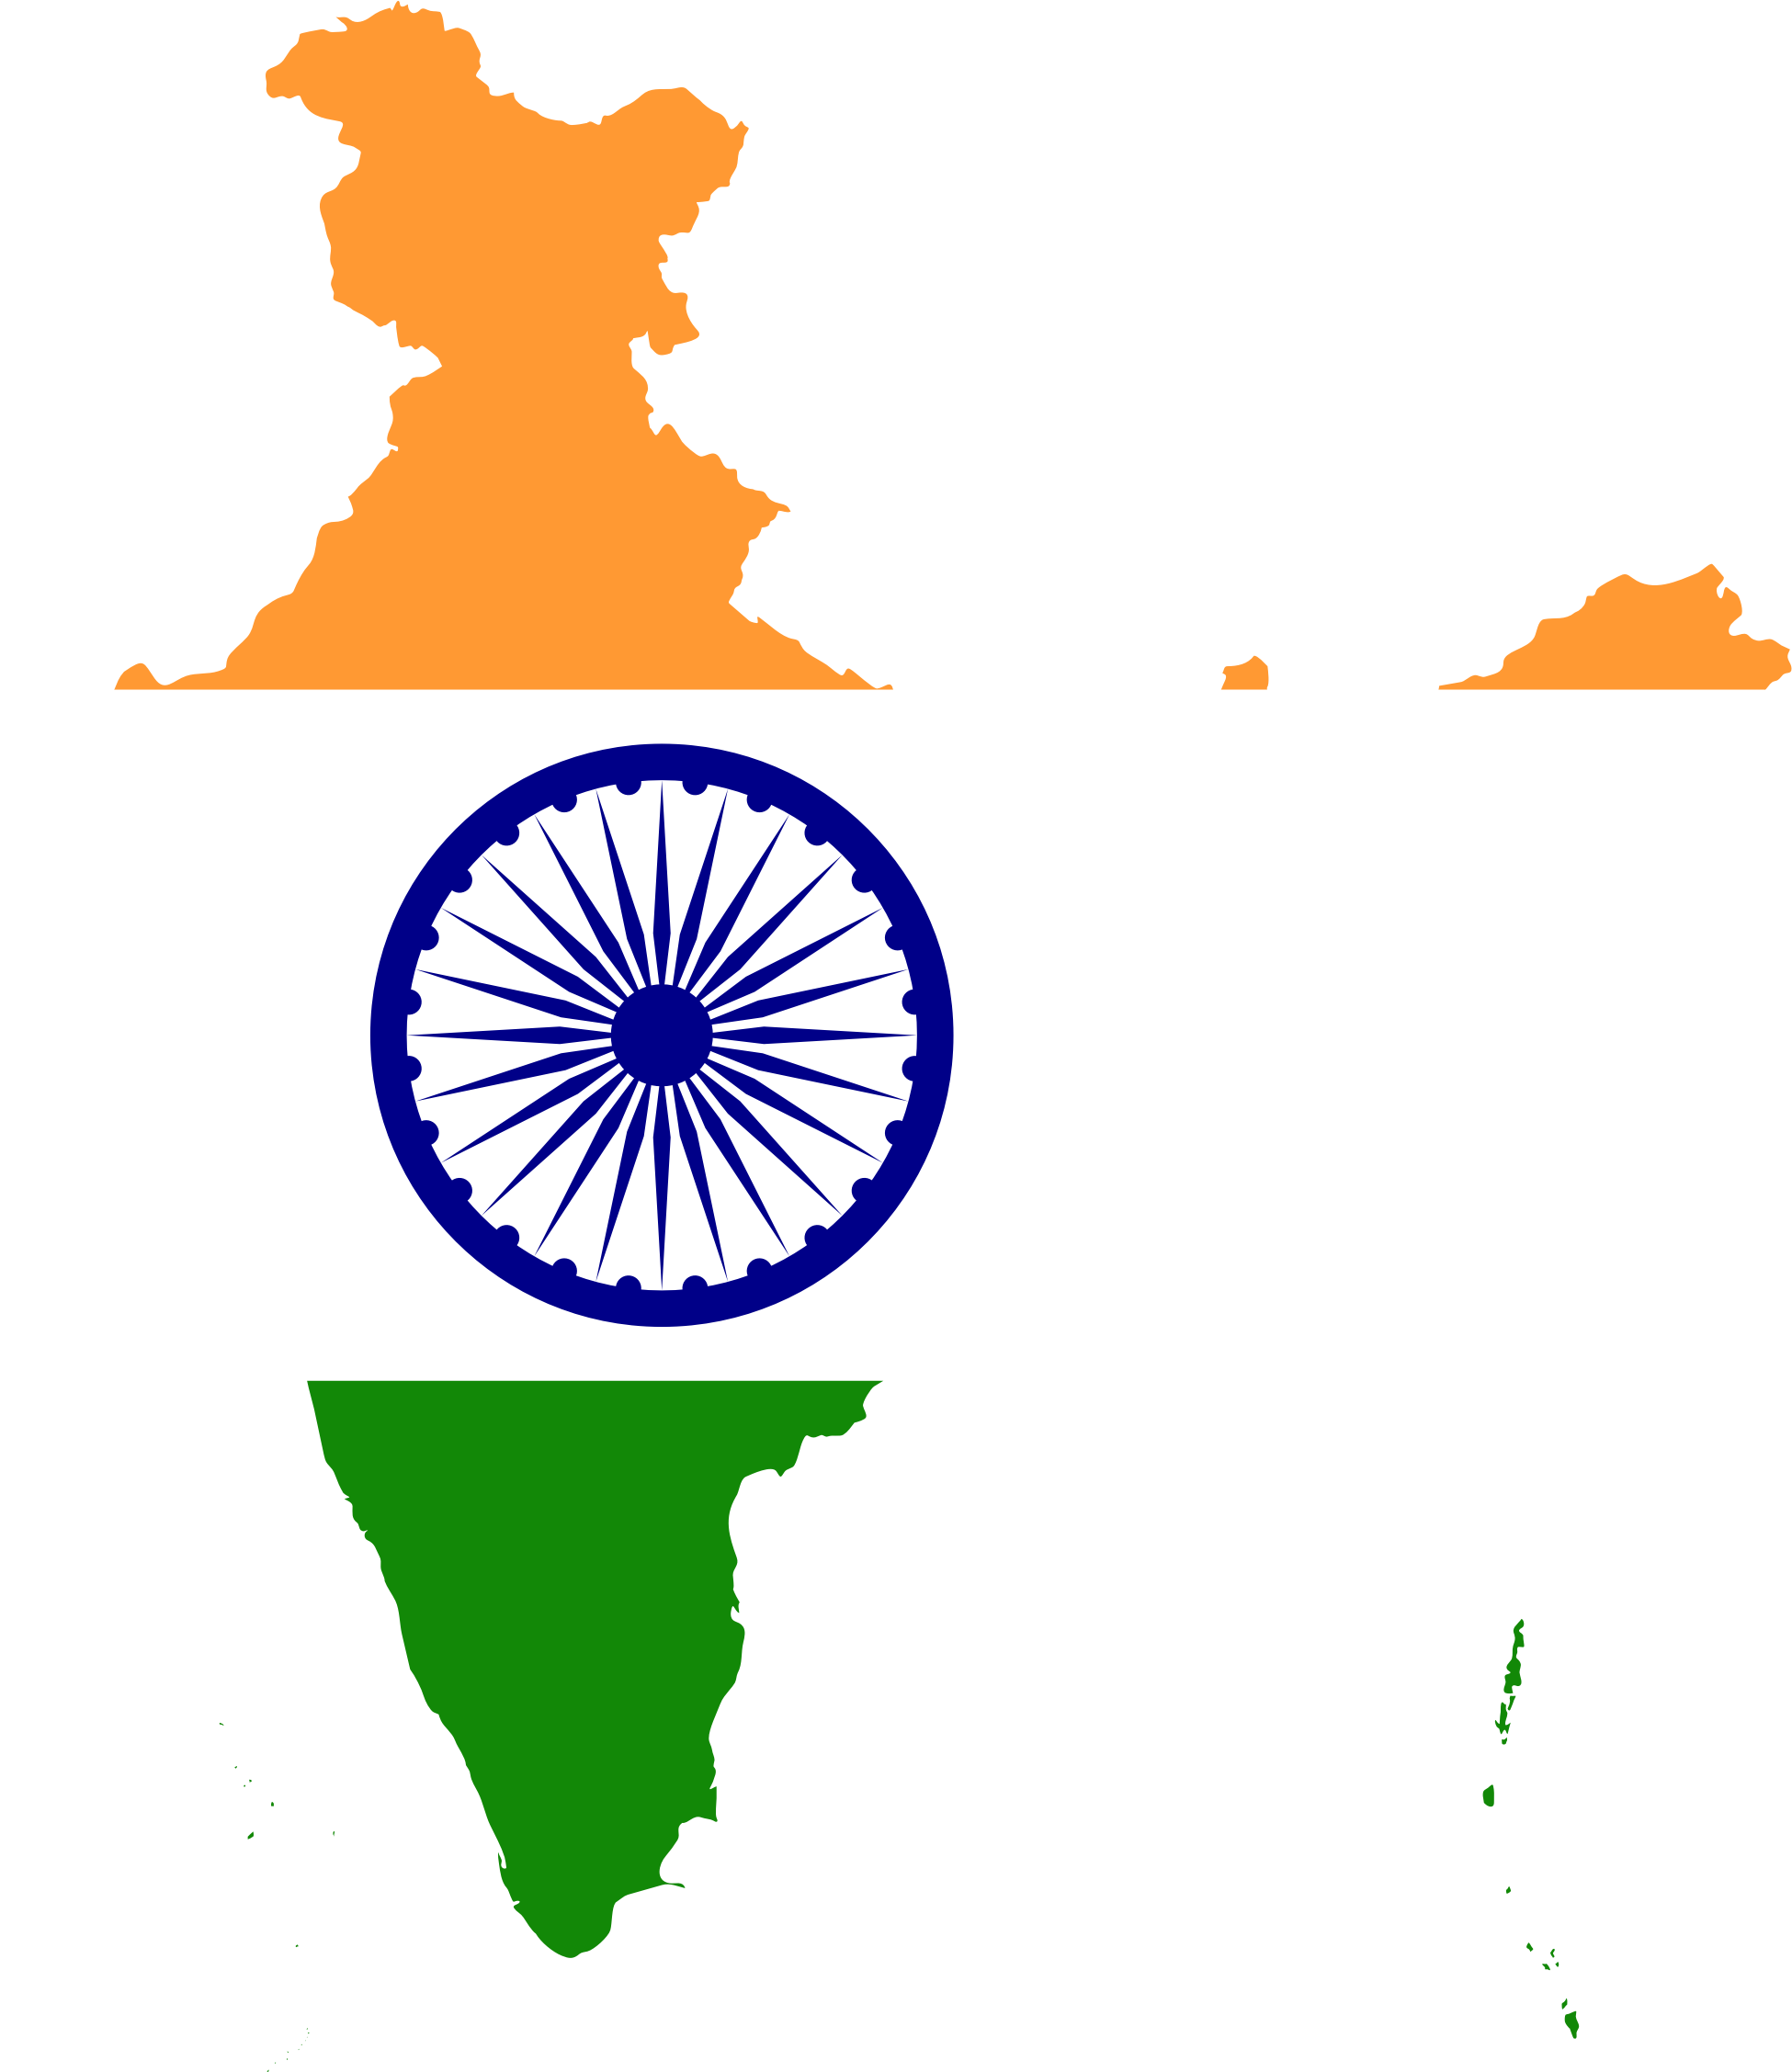 Clipart map simple. India flag big image